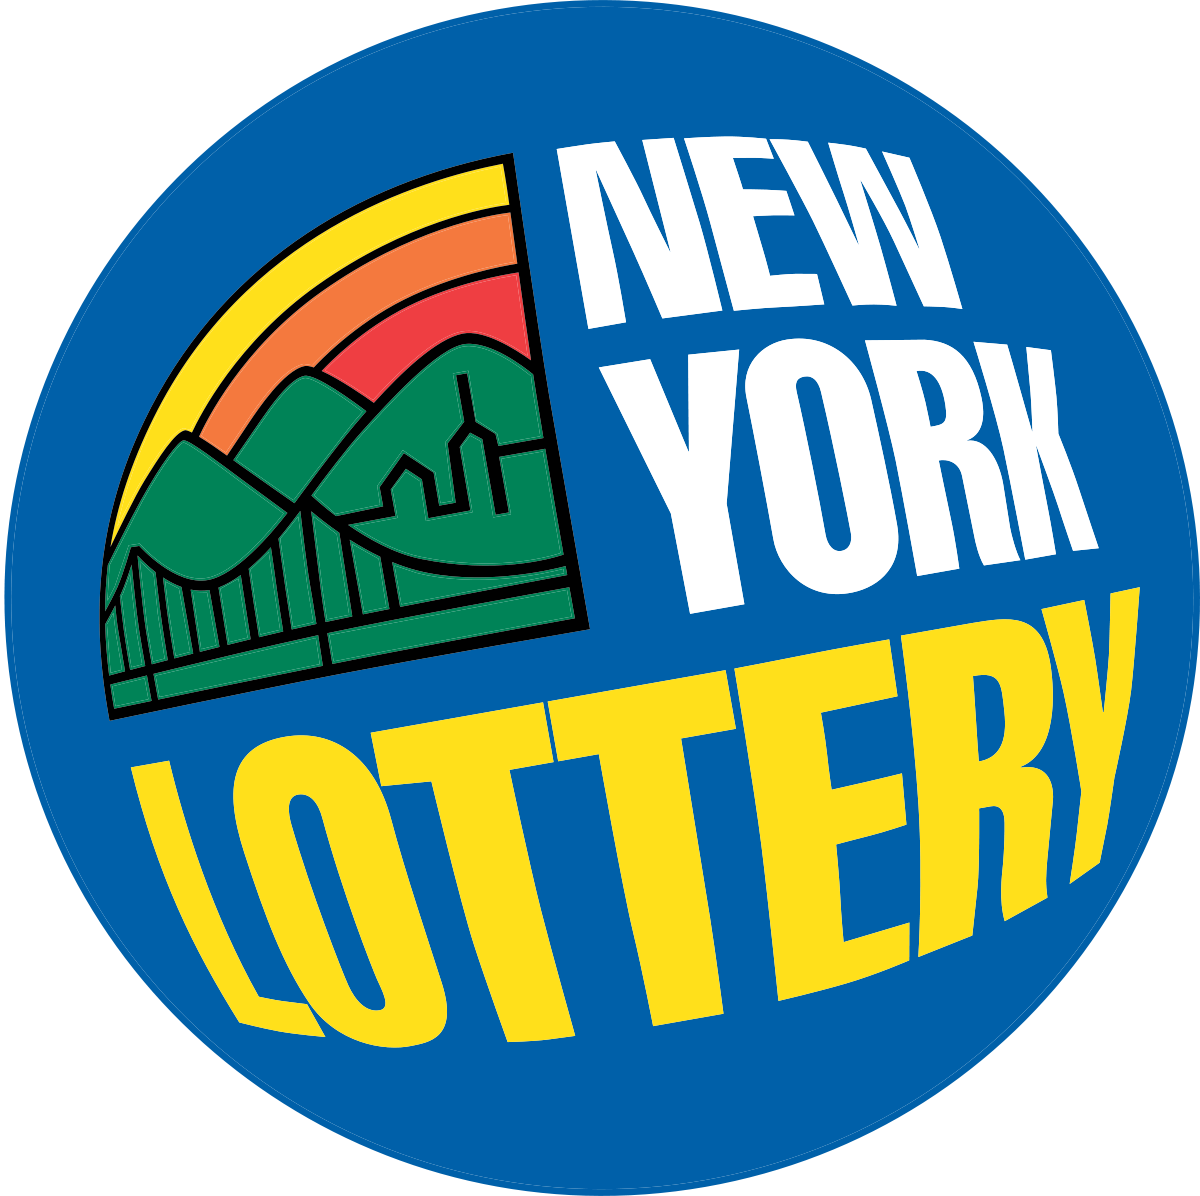 Pick 3 new jersey (nj) lottery results & game details